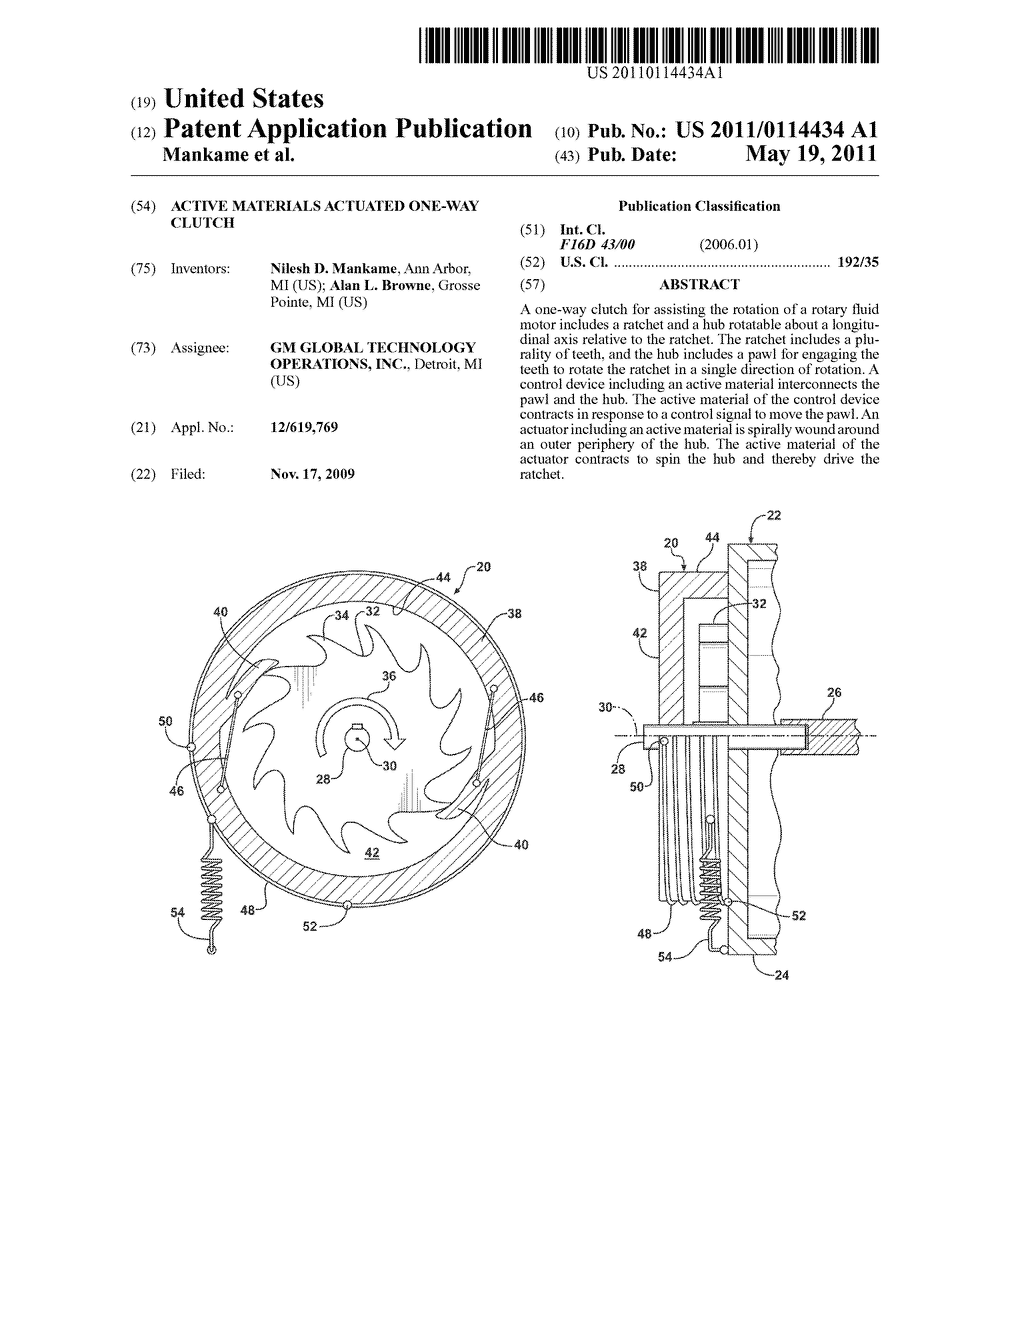 ACTIVE MATERIALS ACTUATED ONE-WAY CLUTCH - diagram, schematic, and image 01